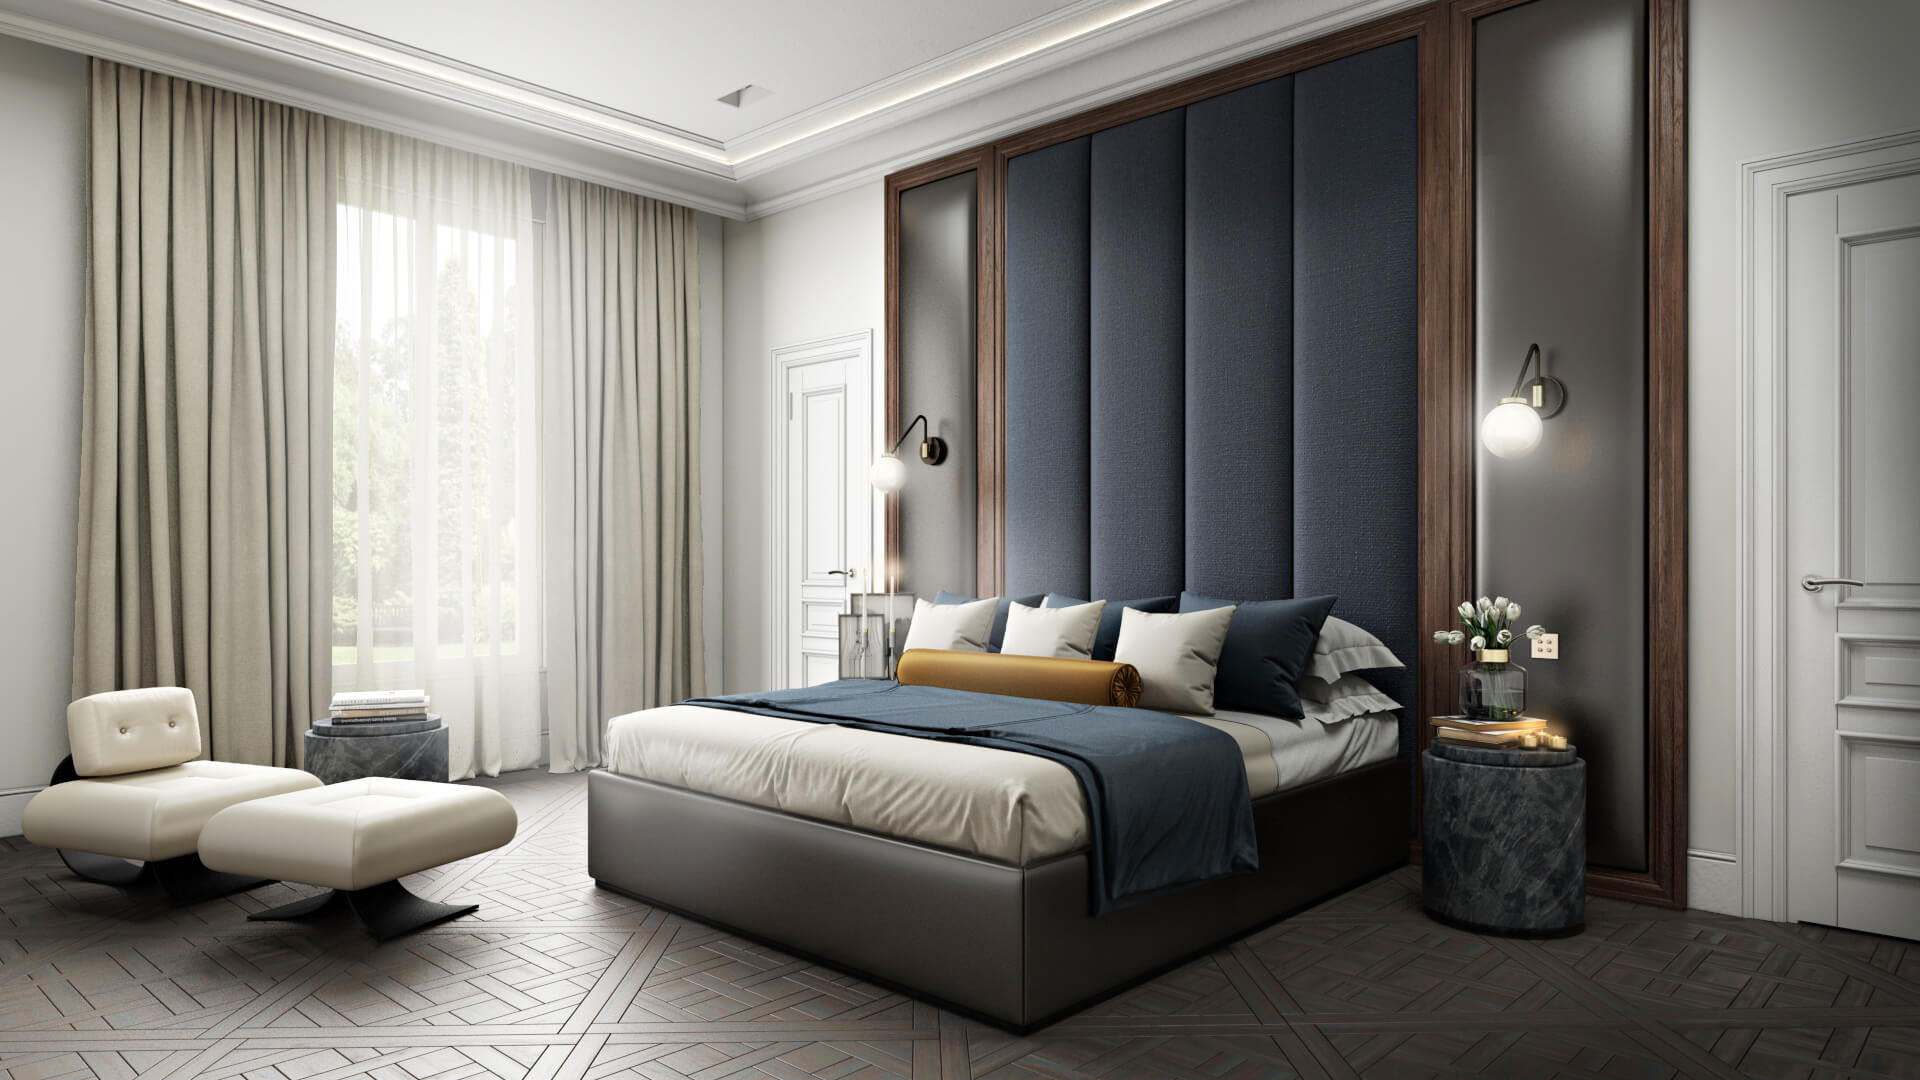 3D Models Created for a Bedroom Furniture